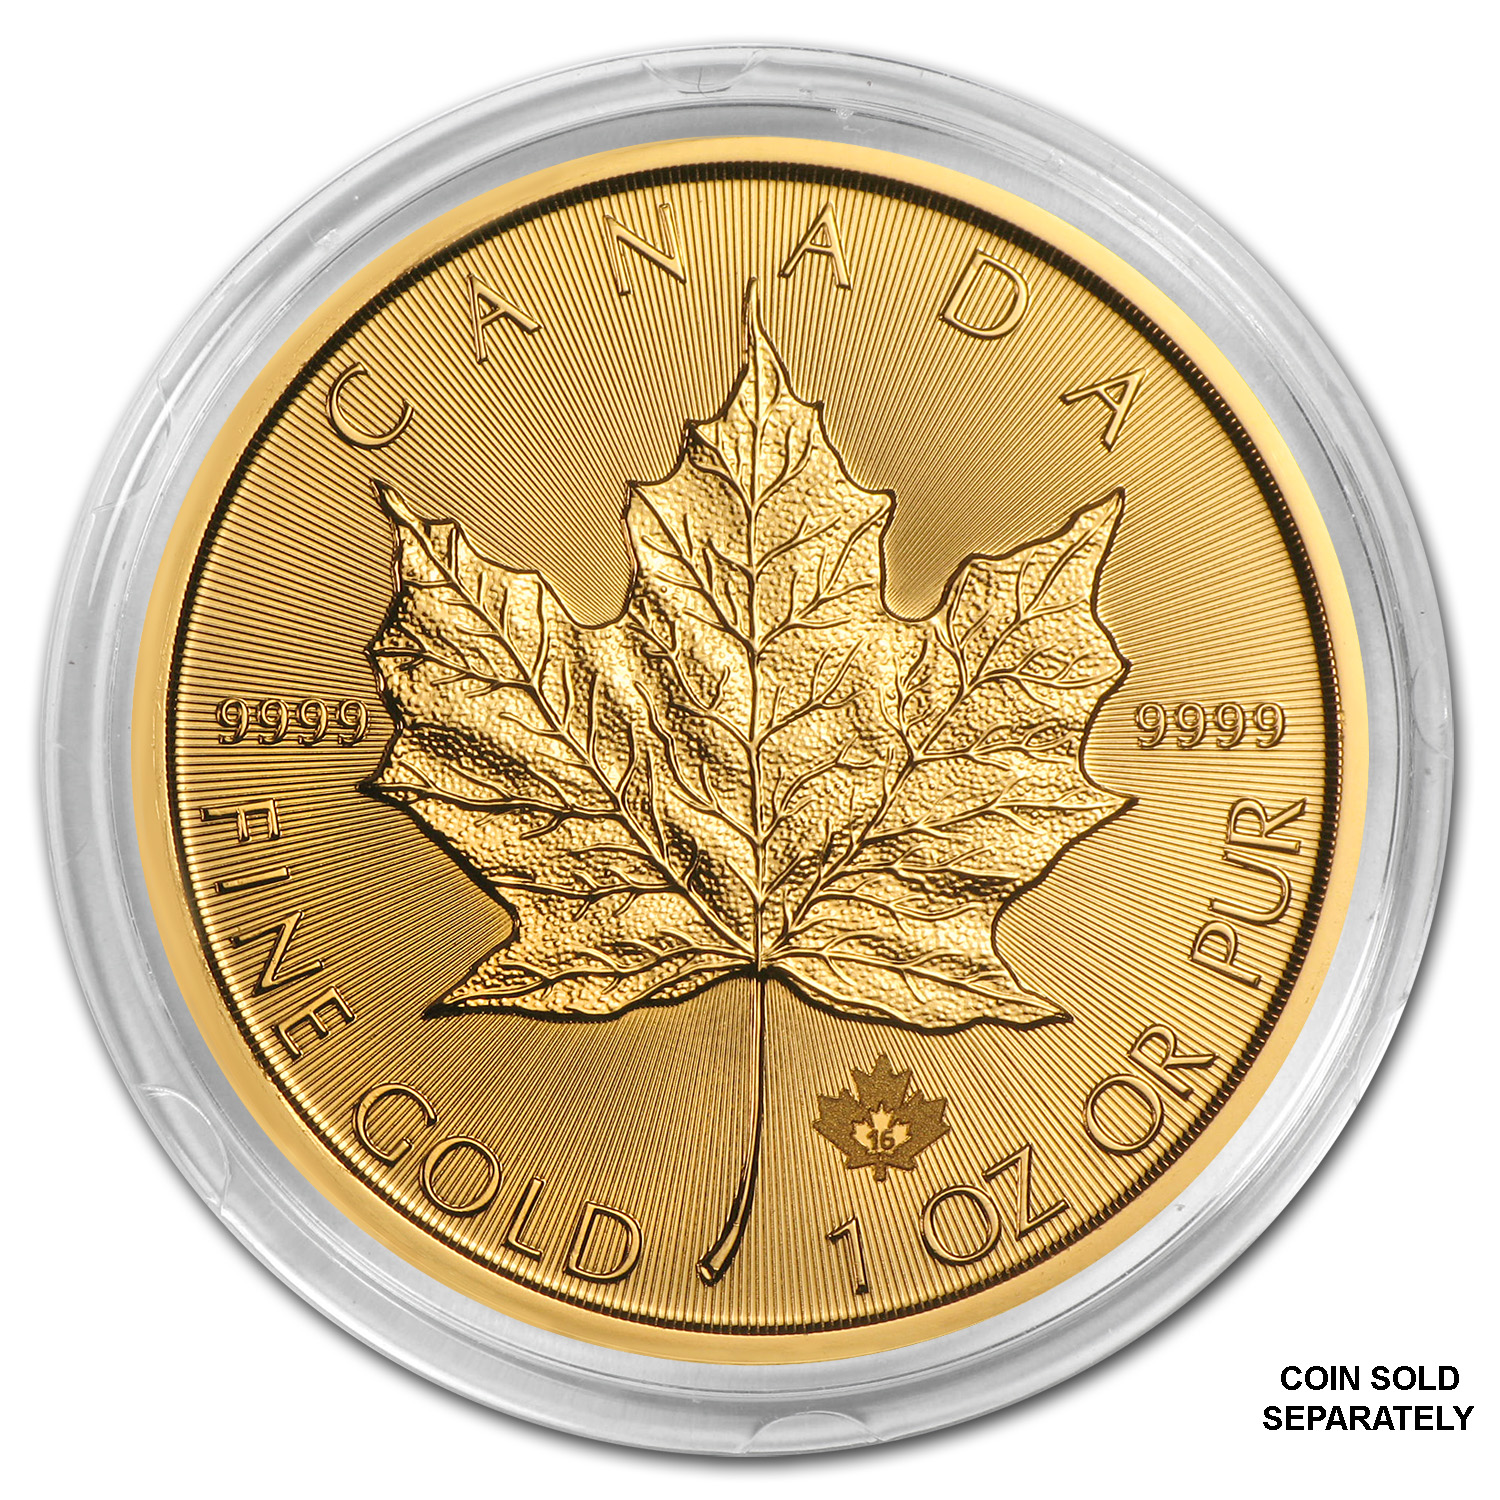 Gold Canadian Maple Leaf Direct Fit Capsule — 1 oz